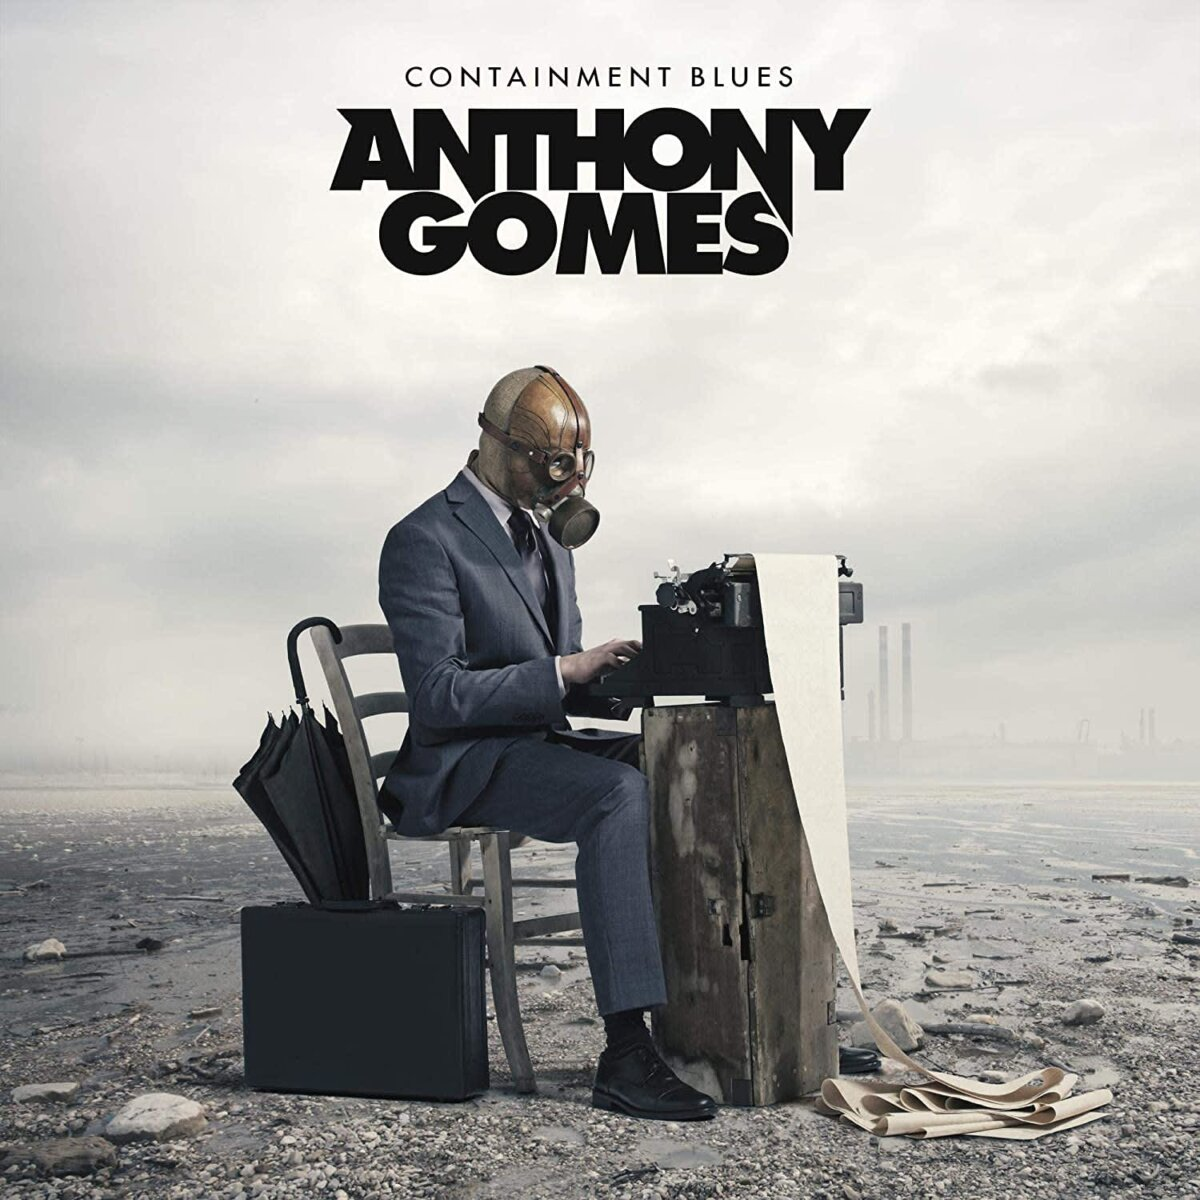 Anthony Gomes - Containment Blues